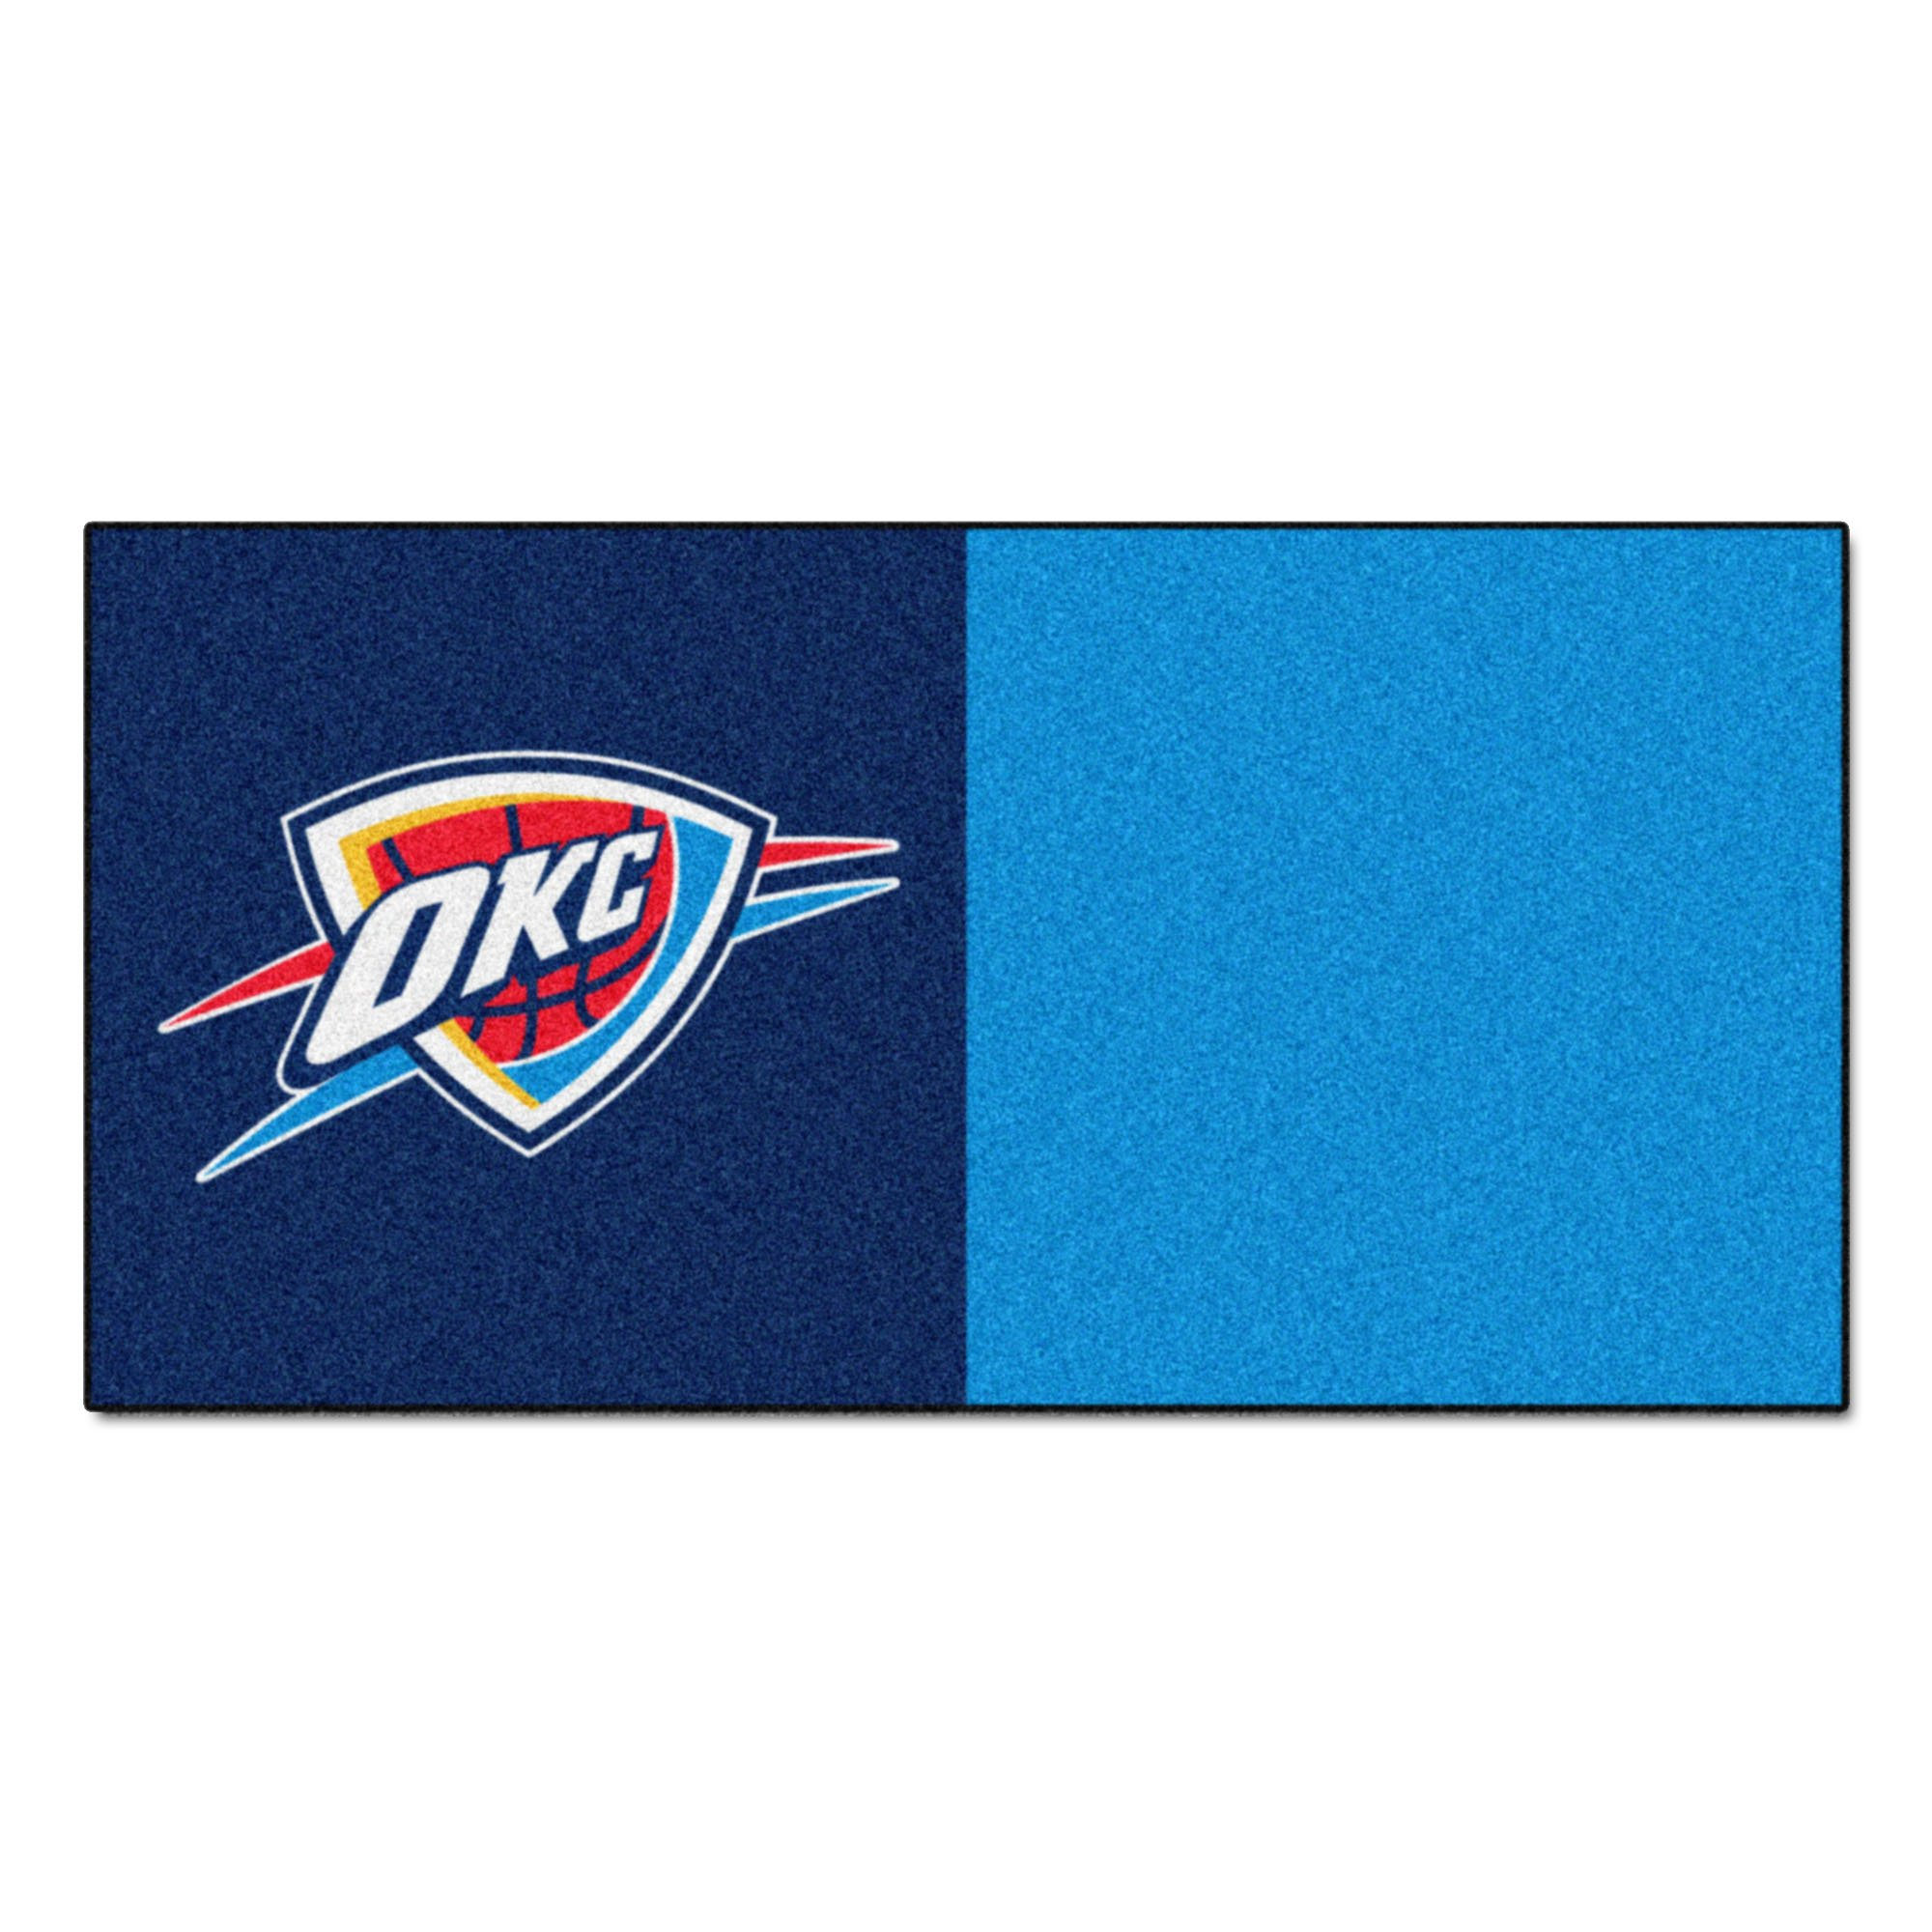 FANMATS NBA Oklahoma City Thunder Nylon Face Team Carpet Tiles by Fanmats